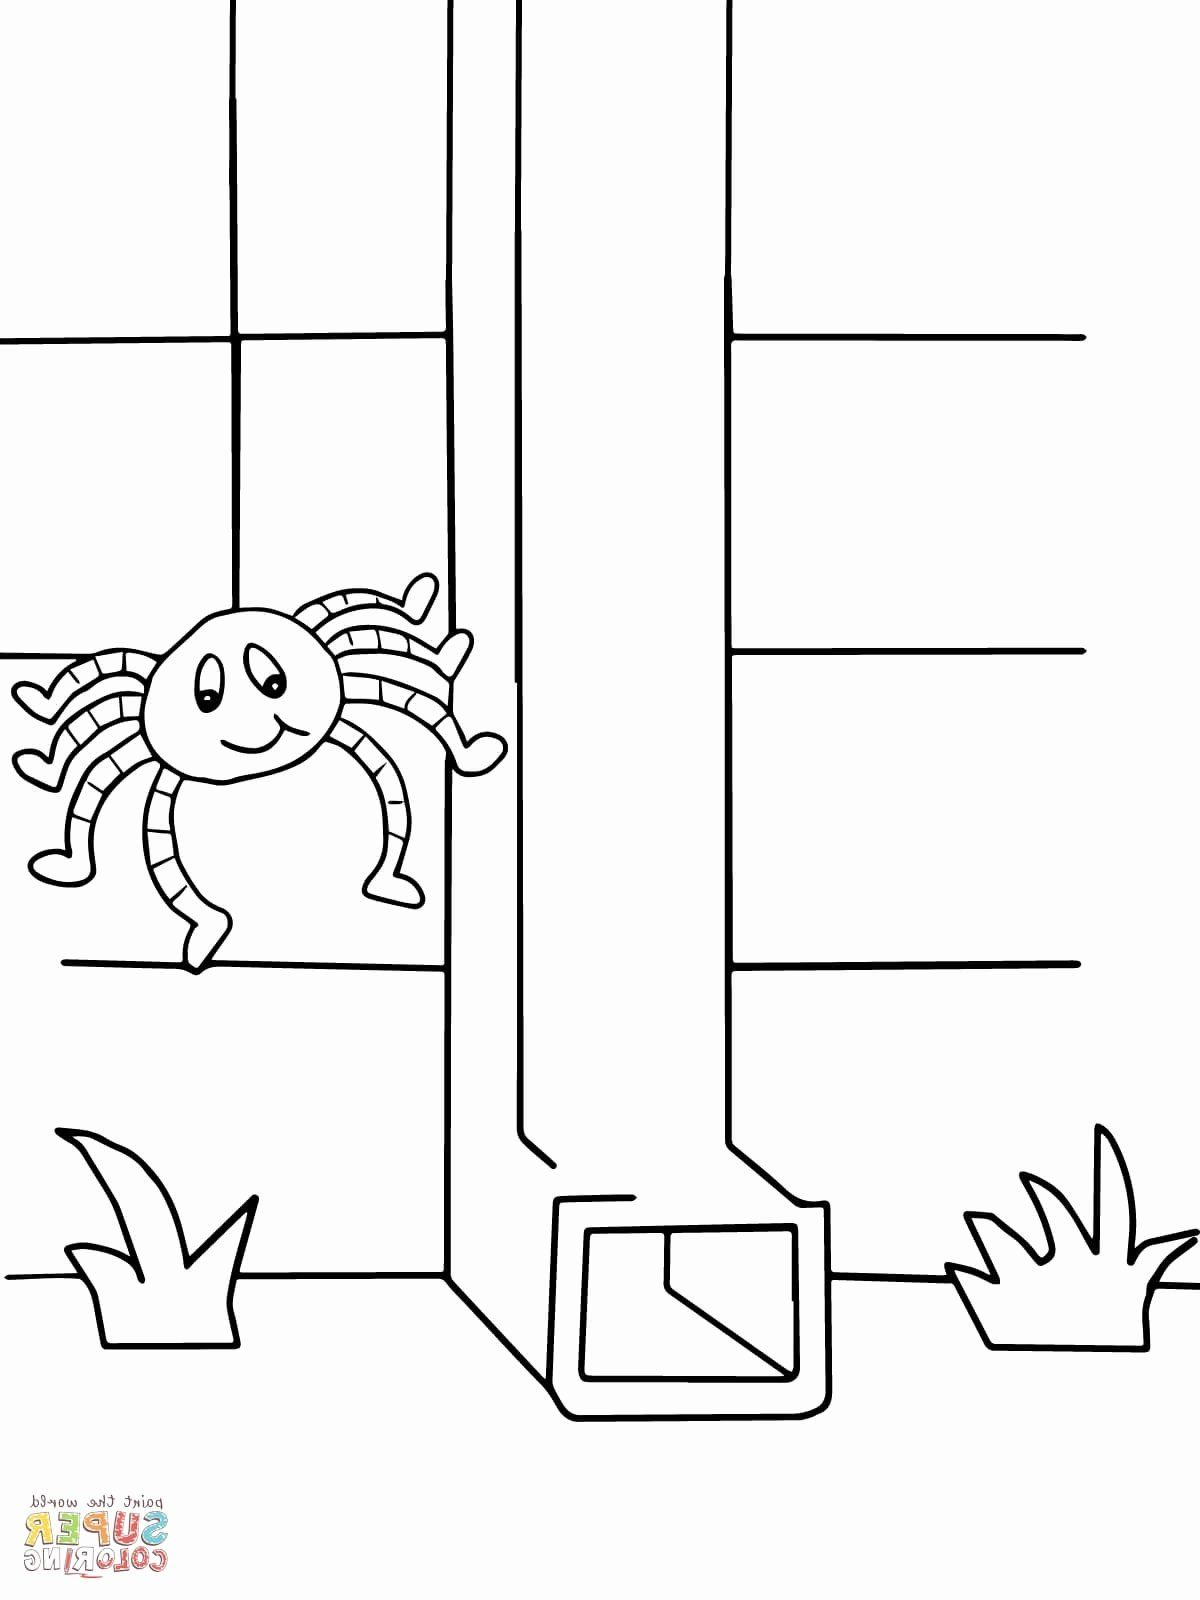 Itsy Bitsy Spider Coloring Page Best Of 45 Itsy Bitsy